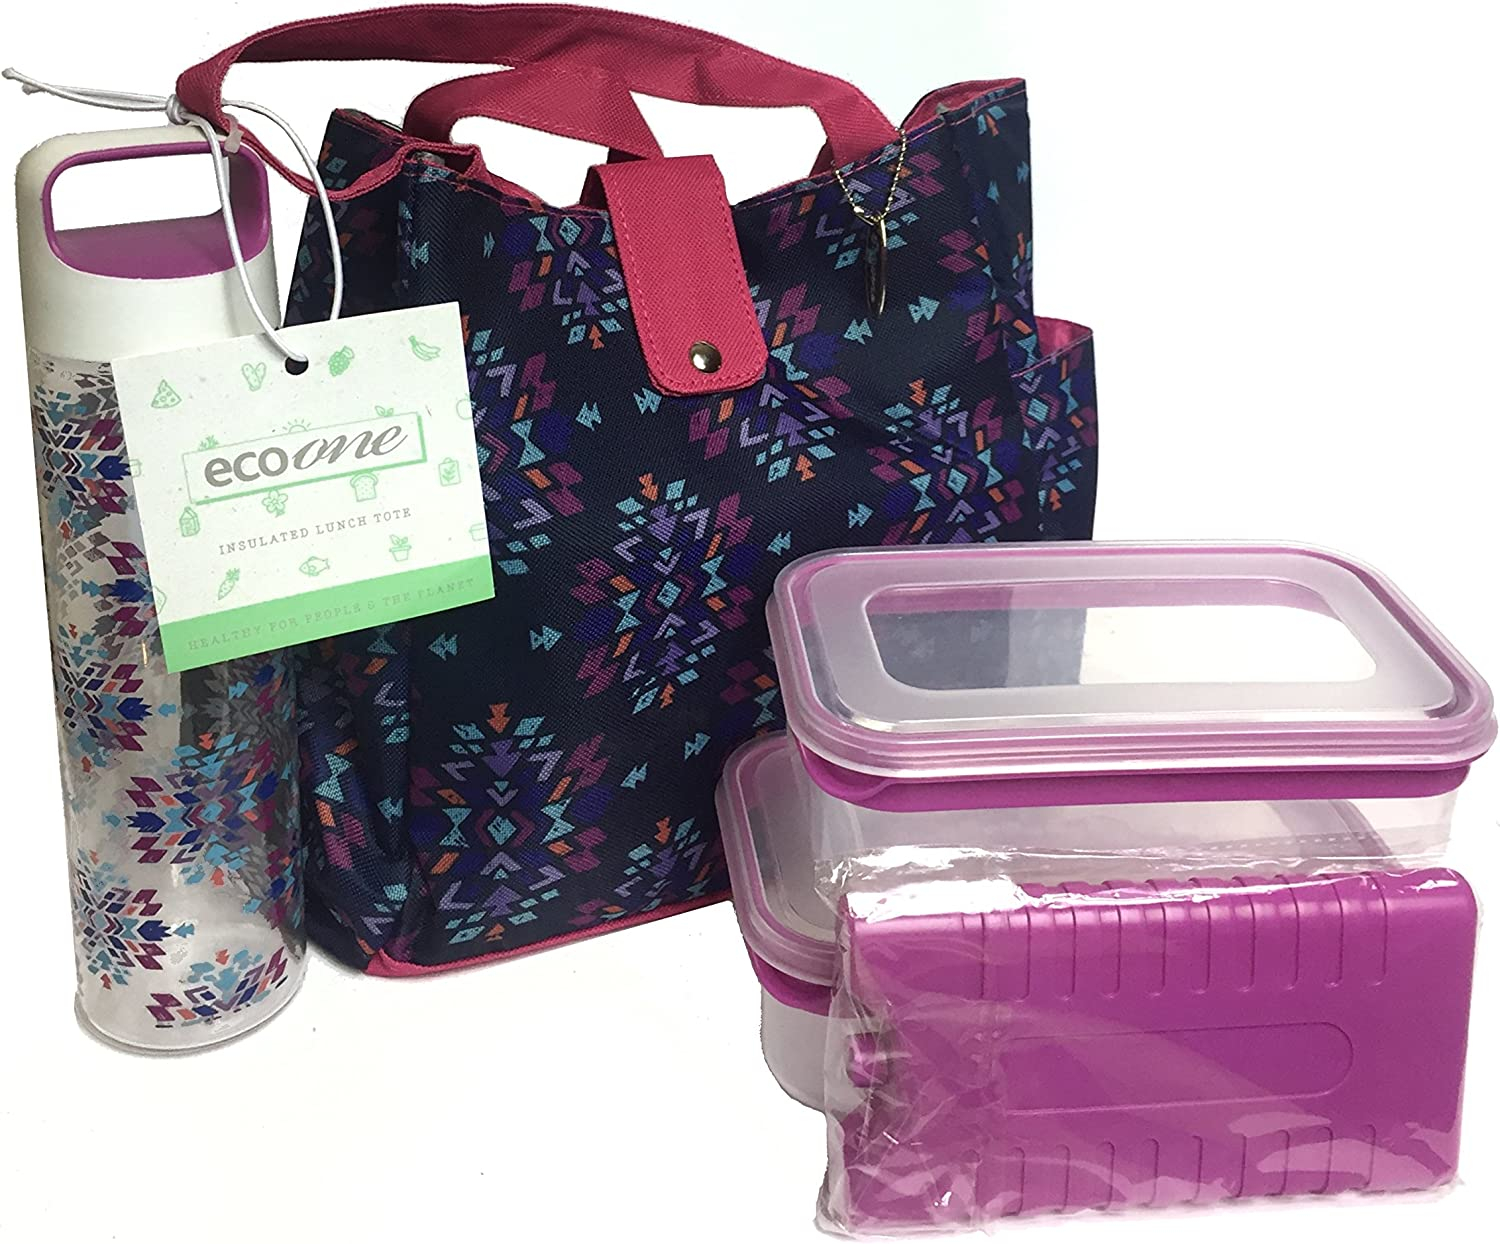 SILVER ONE Durable & Reusable Premium Insulated Heavy Duty Tote Lunch Bag Set for Picnic/Beach |Includes 2 Food Storage Containers, 1 Ice Pack, 1 Plastic Water Bottle | Button Snap Closure By Eco One